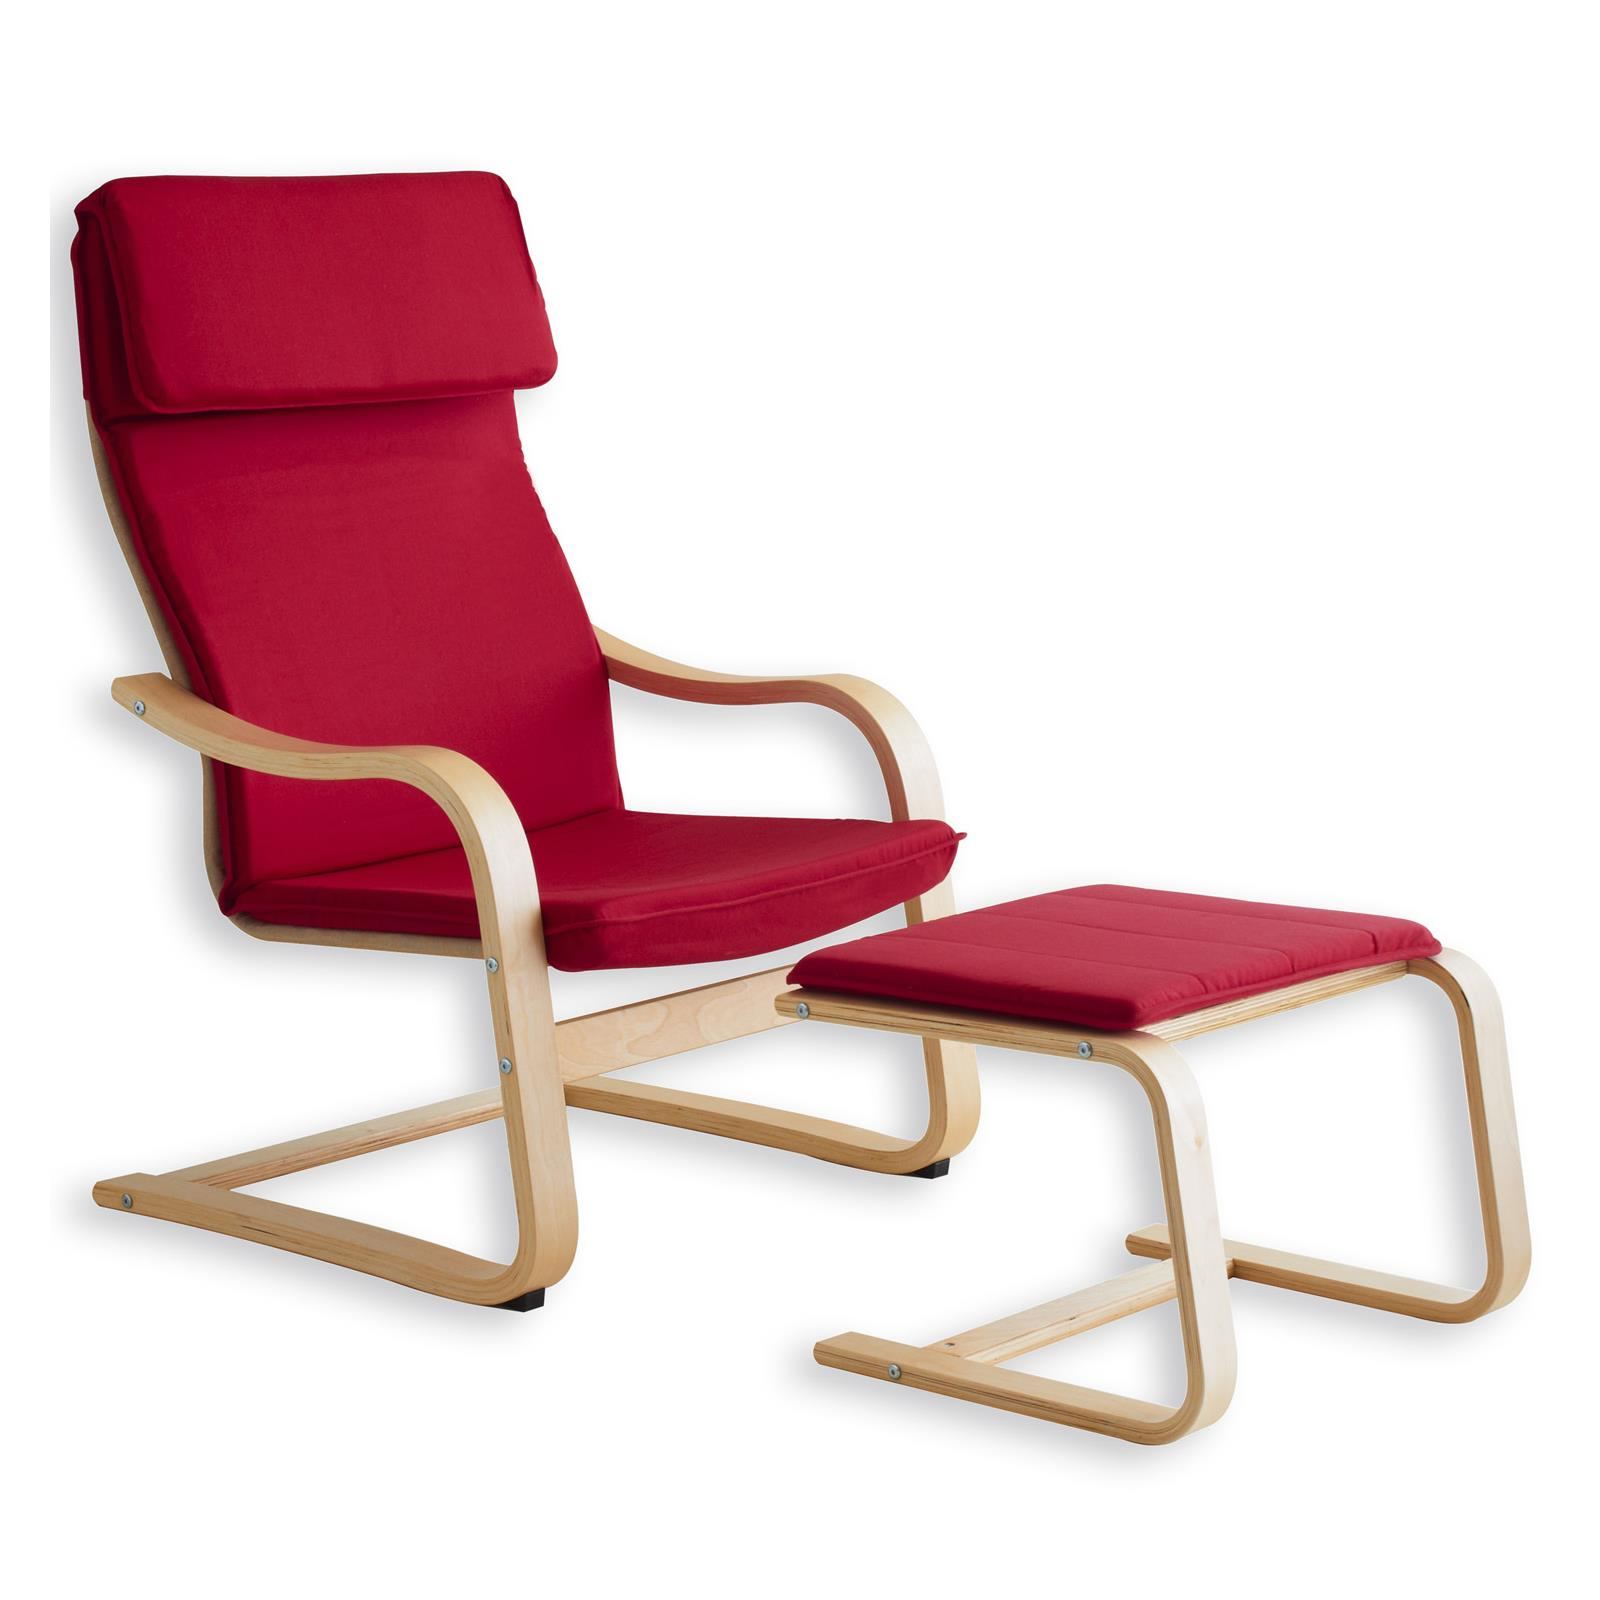 Relaxsessel lina mit hocker in rot mobilia24 for Sessel mit hocker rot